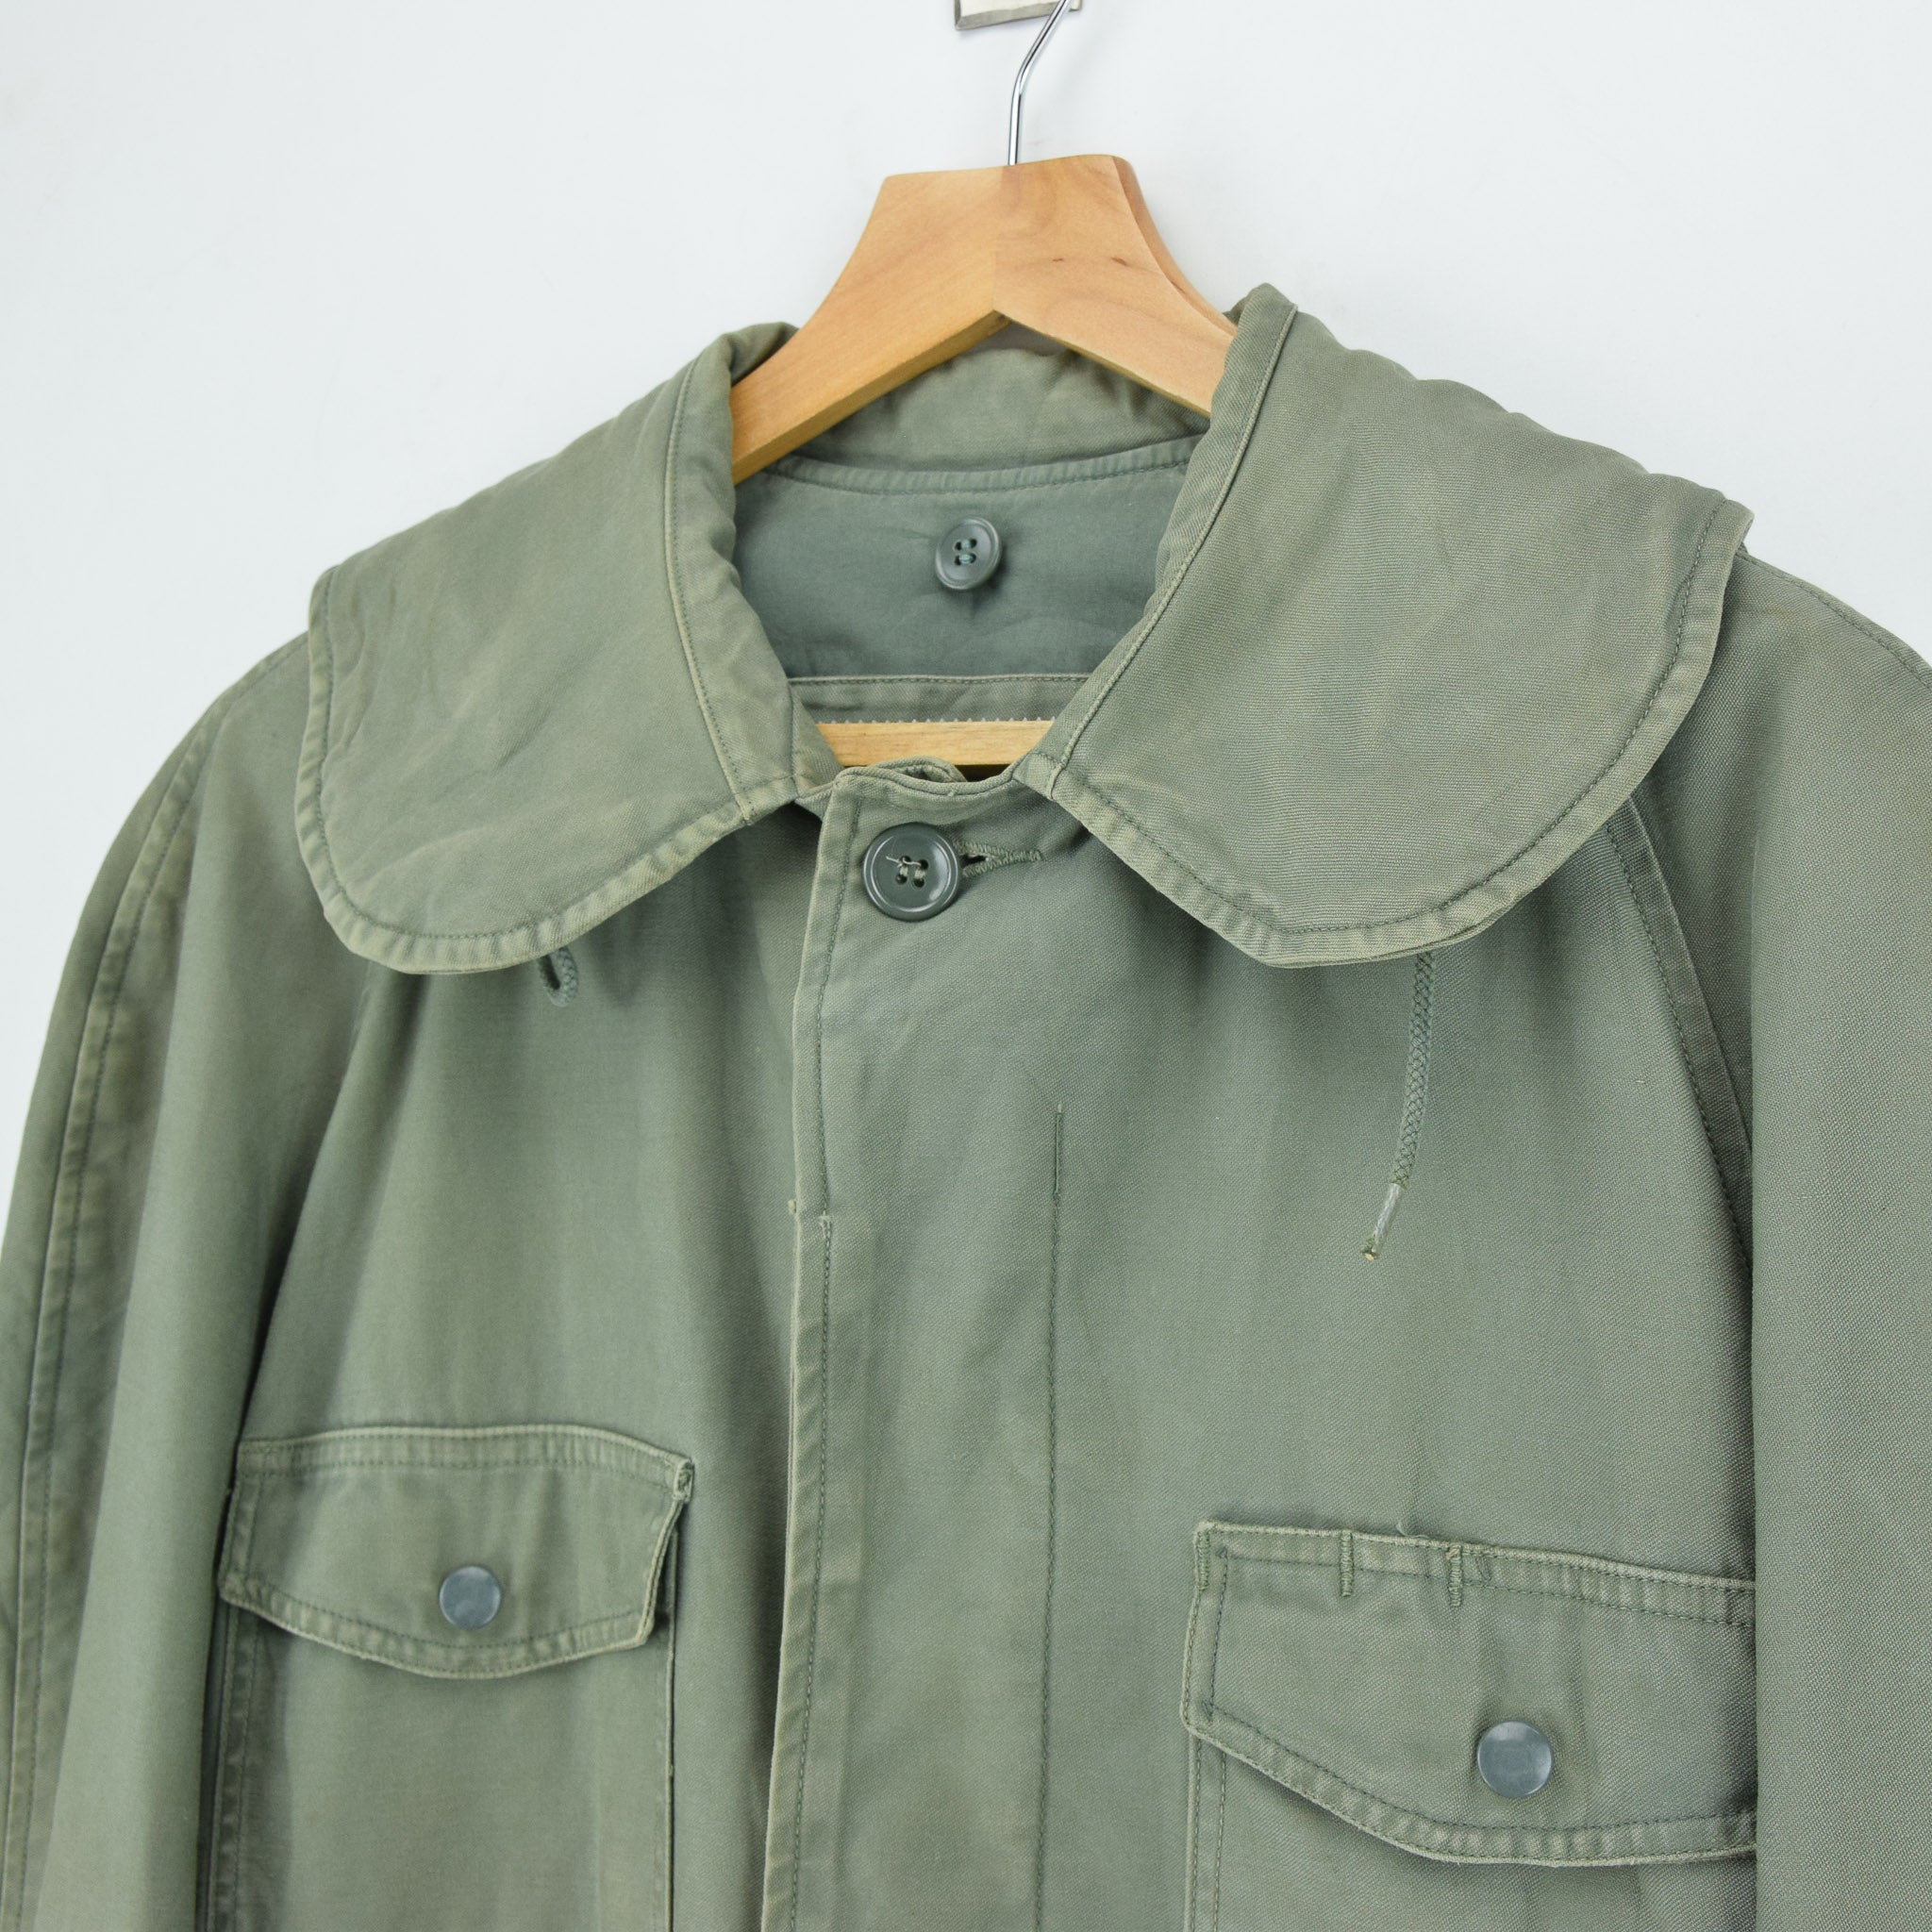 Vintage 60s Vietnam War US Air Force Field Jacket Olive Green USAF M chest